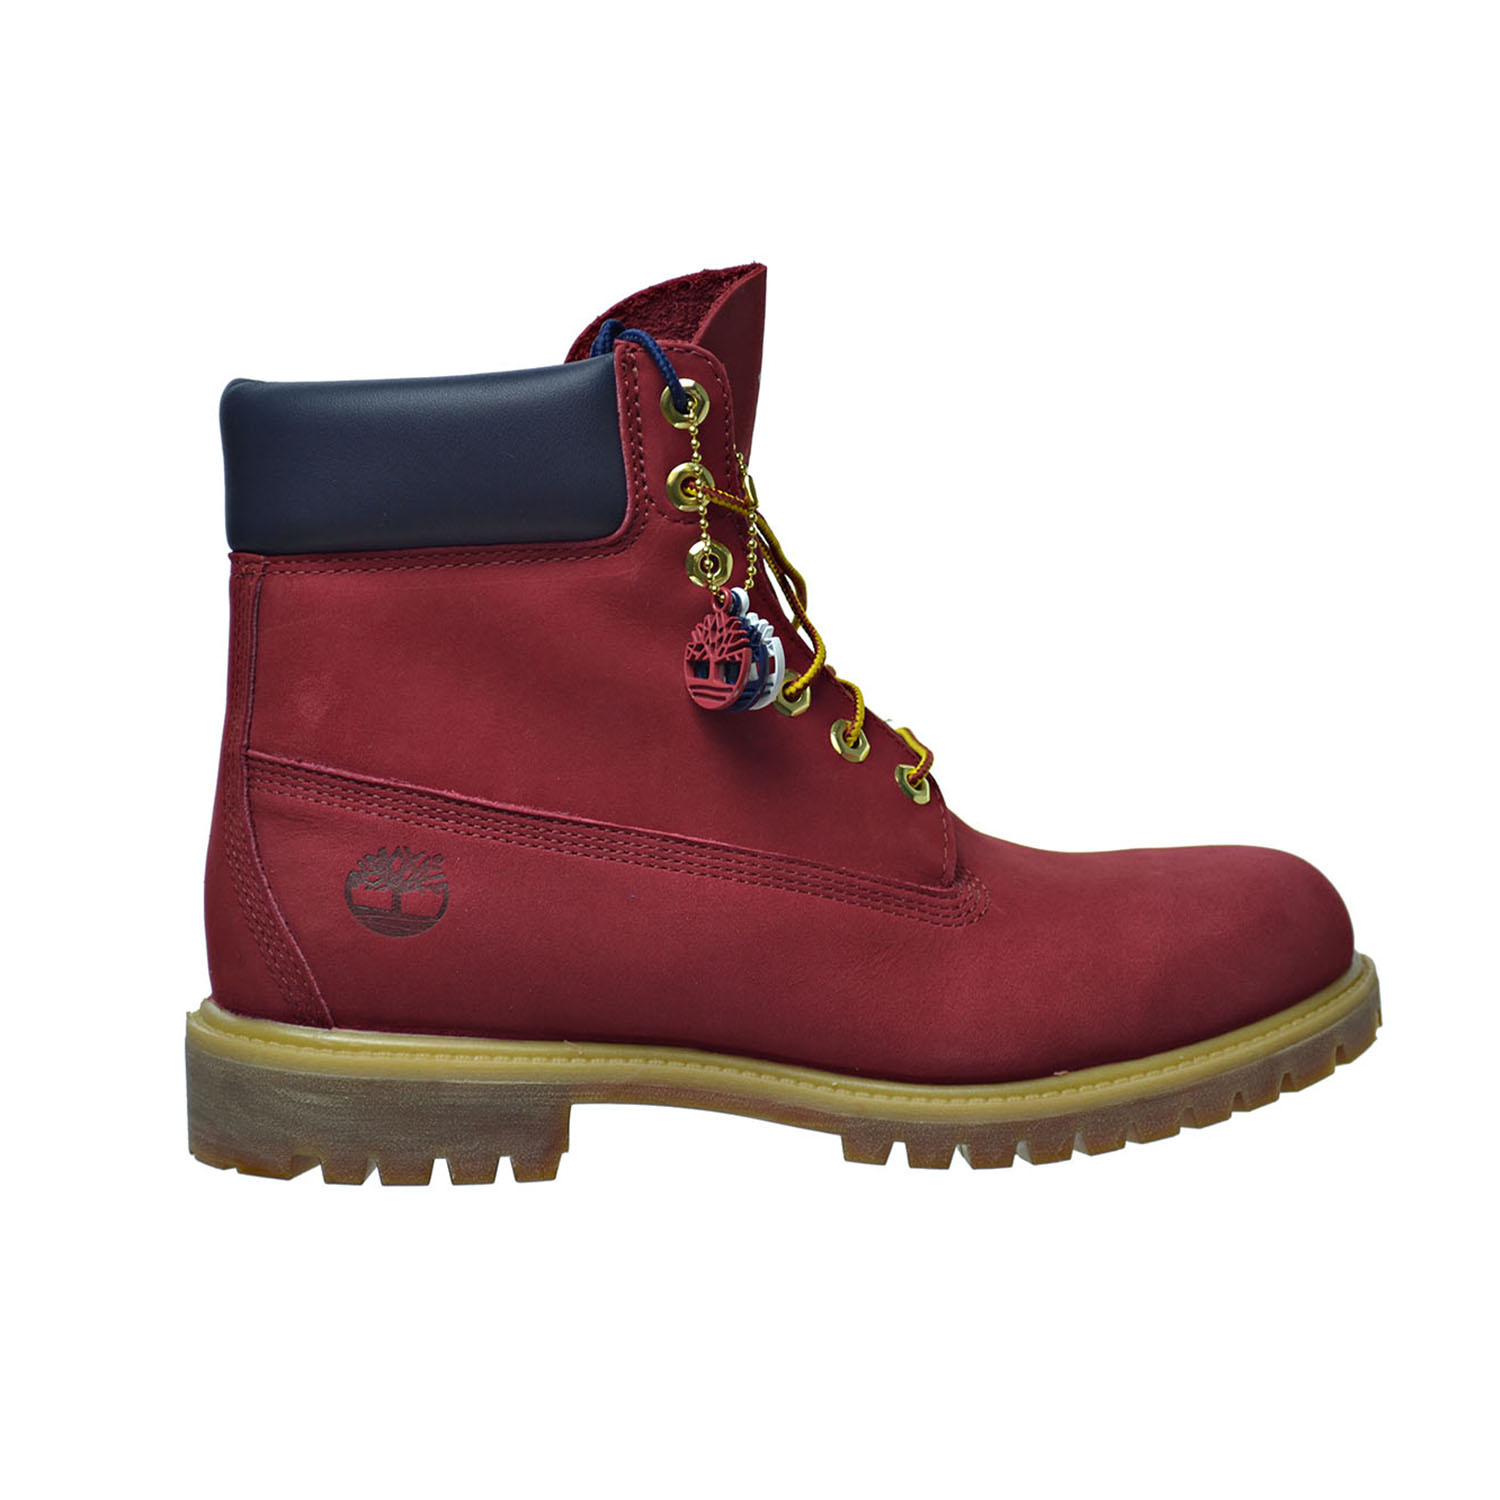 "Timberland 6 Inch Premium ""Patriotic Red"" Mens Boots Red ..."